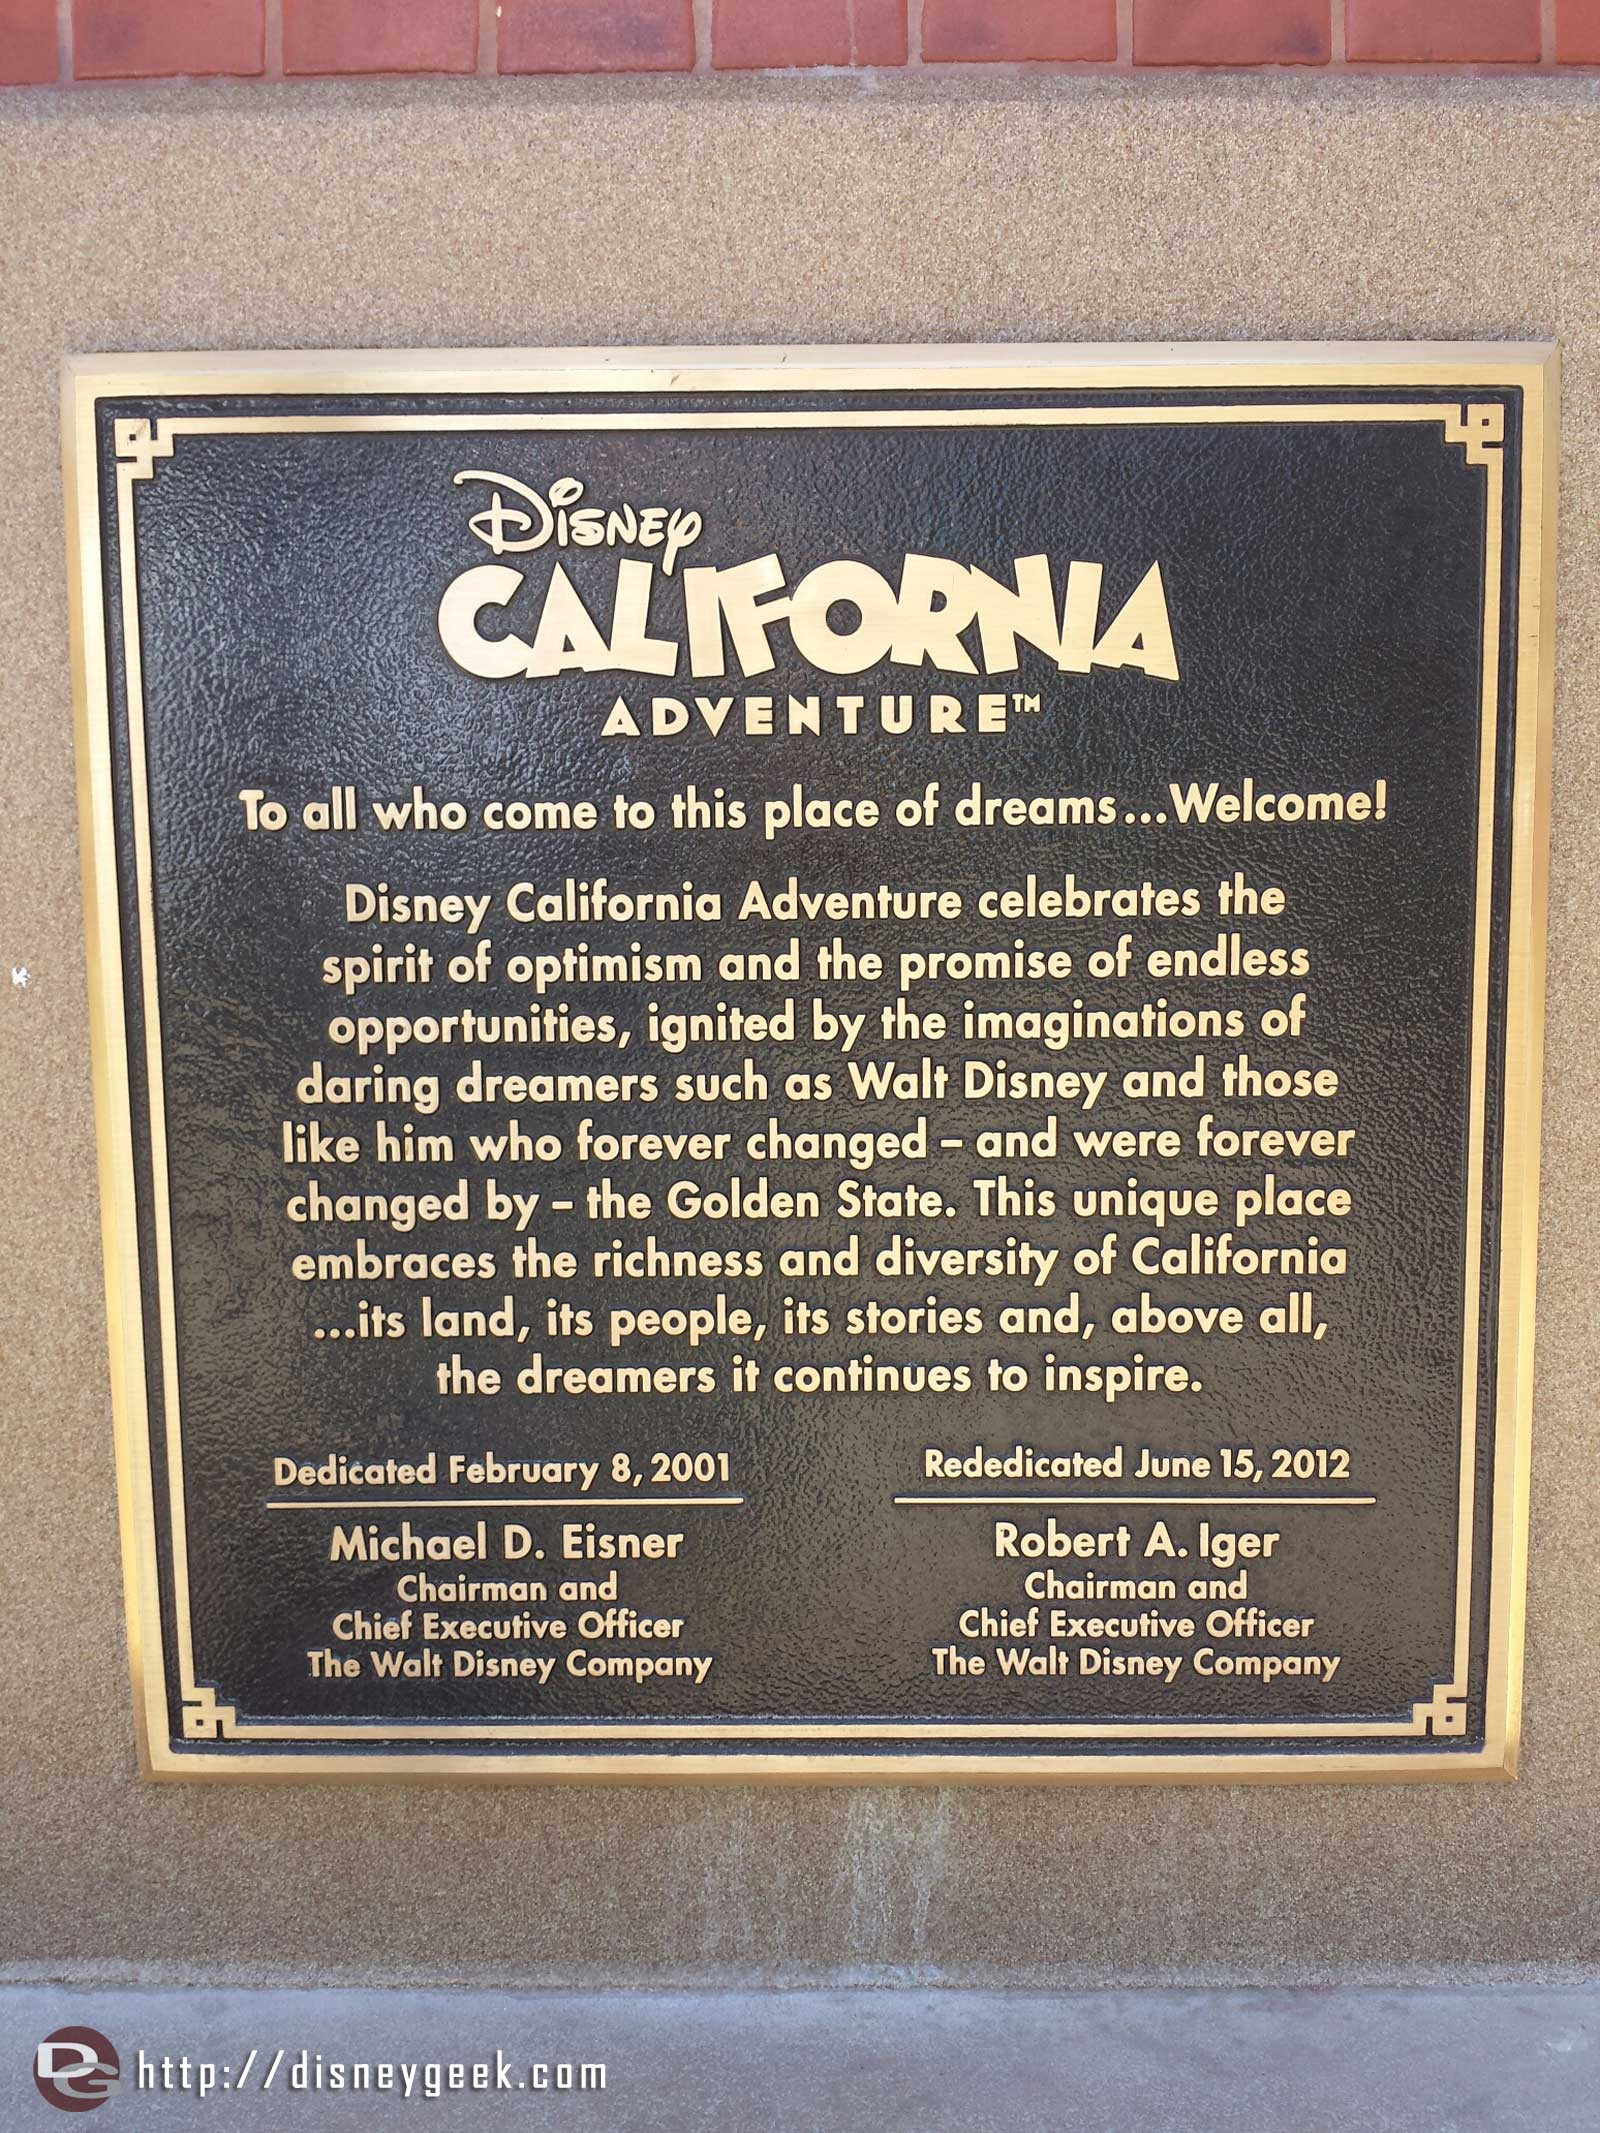 Two years ago this weekend is when the new DCA opened. Here is the Dedication Plaque